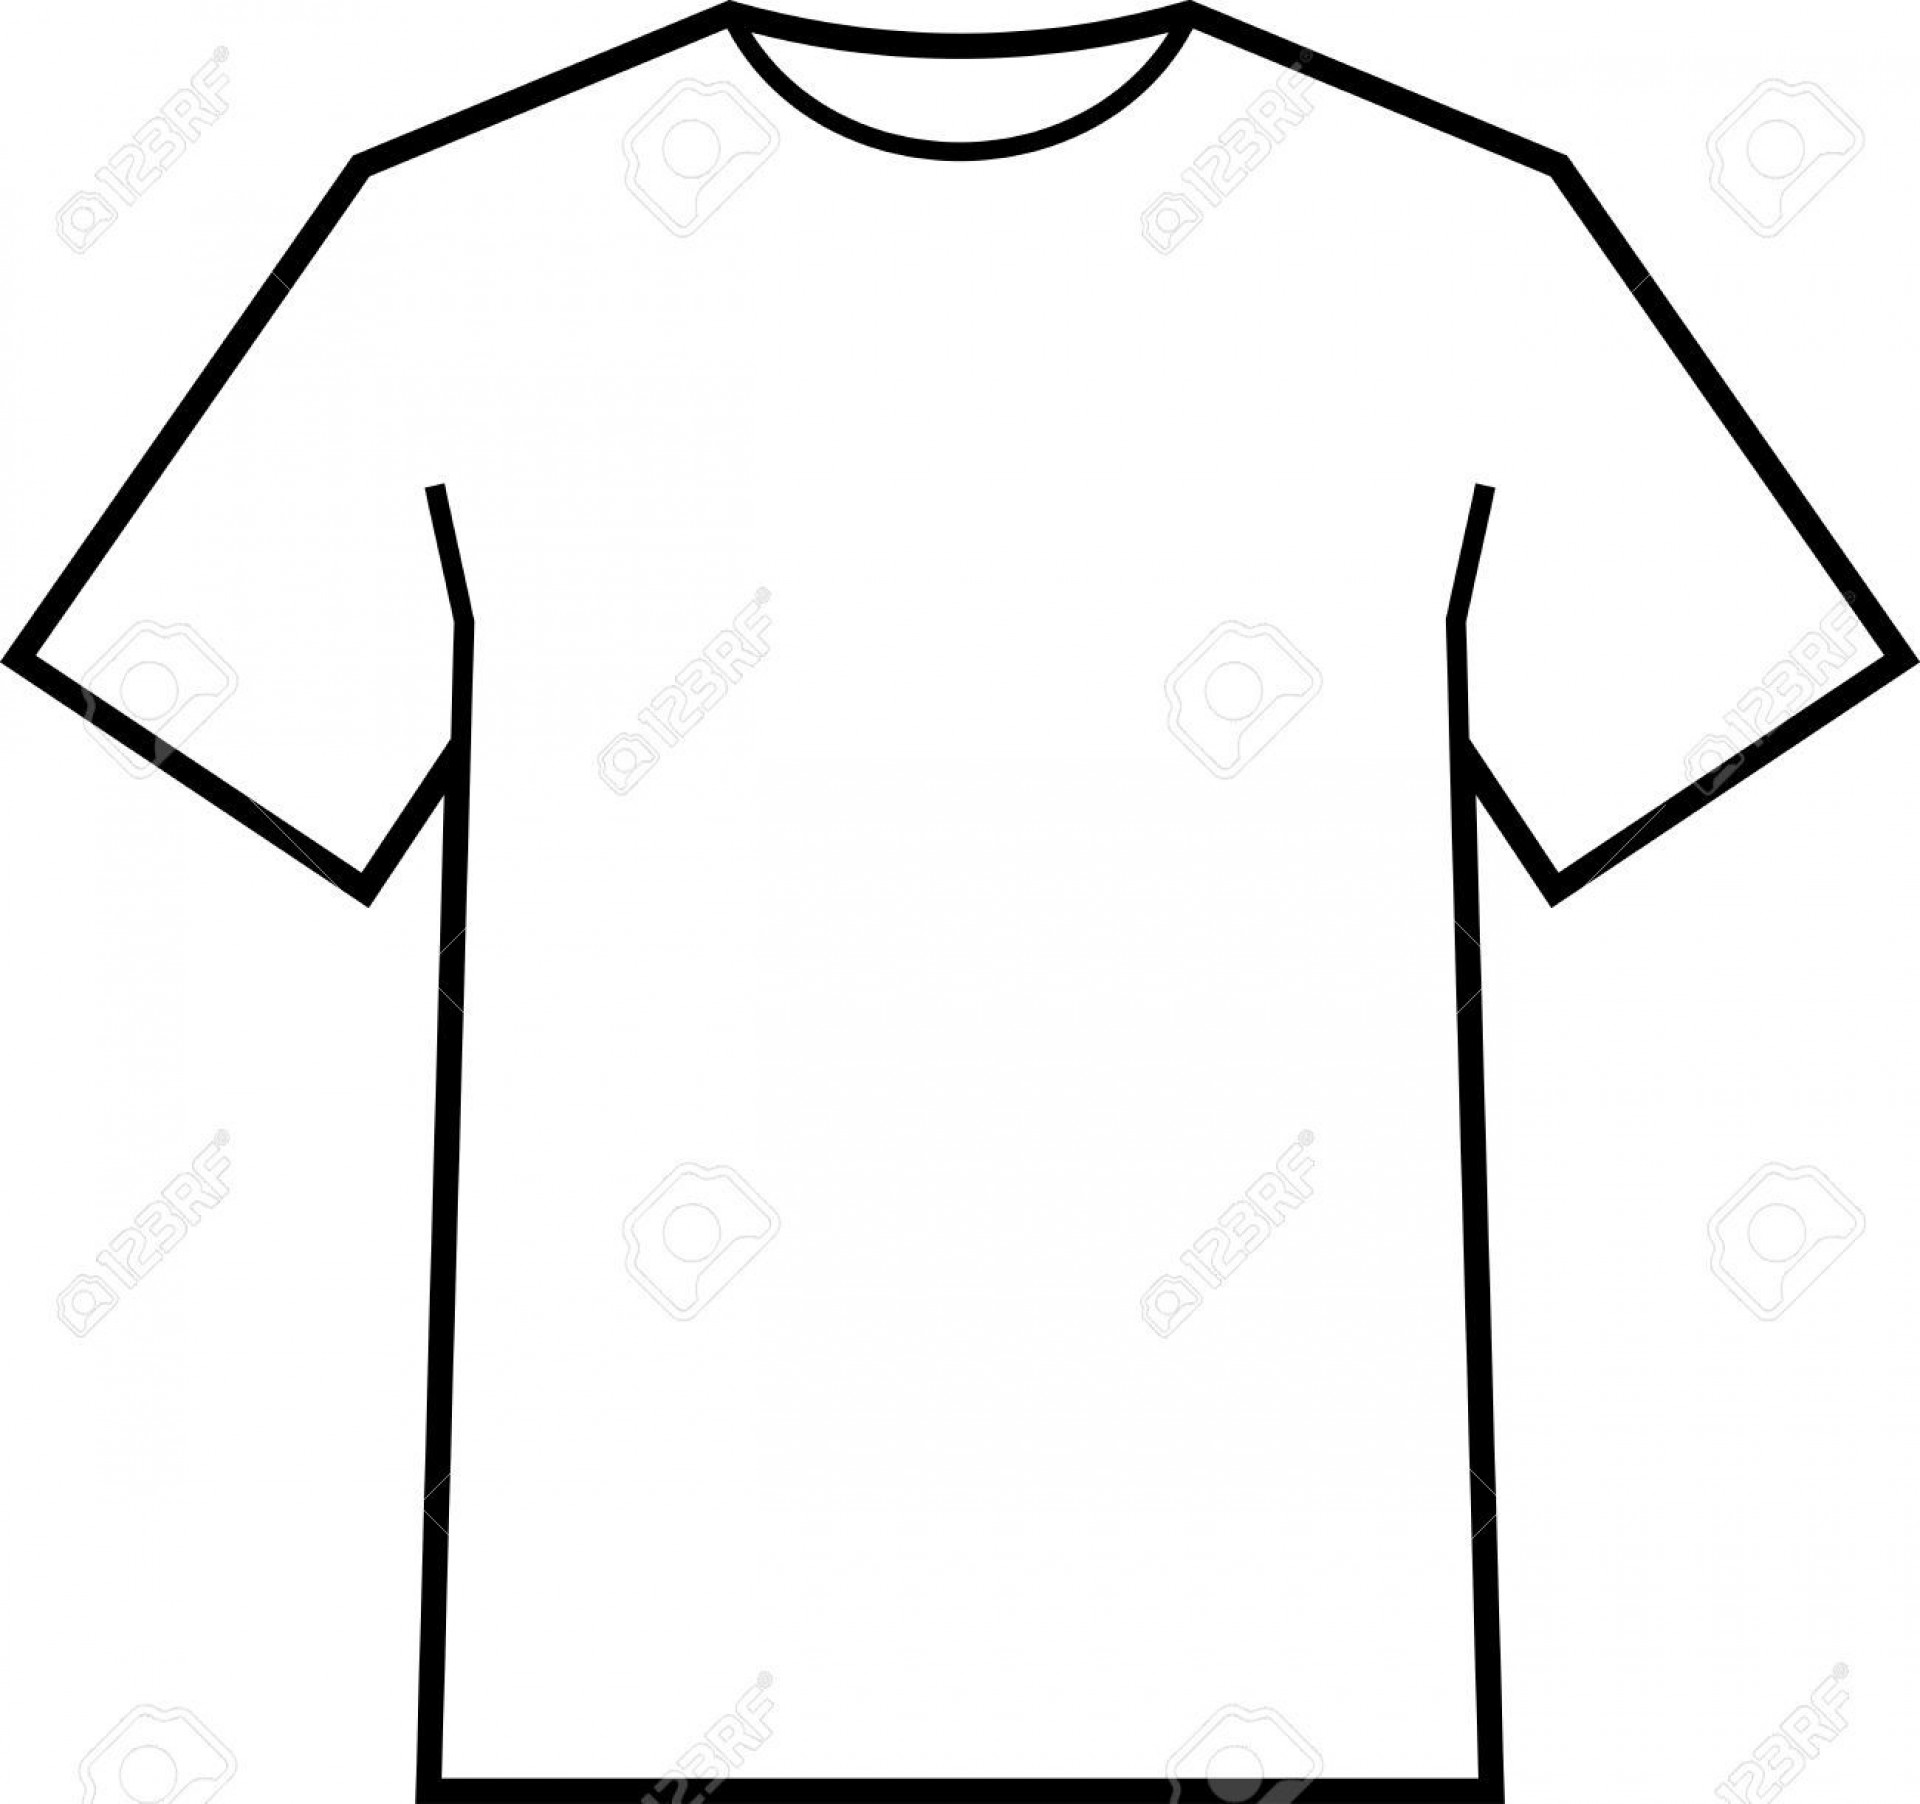 002 Fantastic Blank Tee Shirt Template Highest Clarity  T Design Pdf Free T-shirt Front And Back Download1920